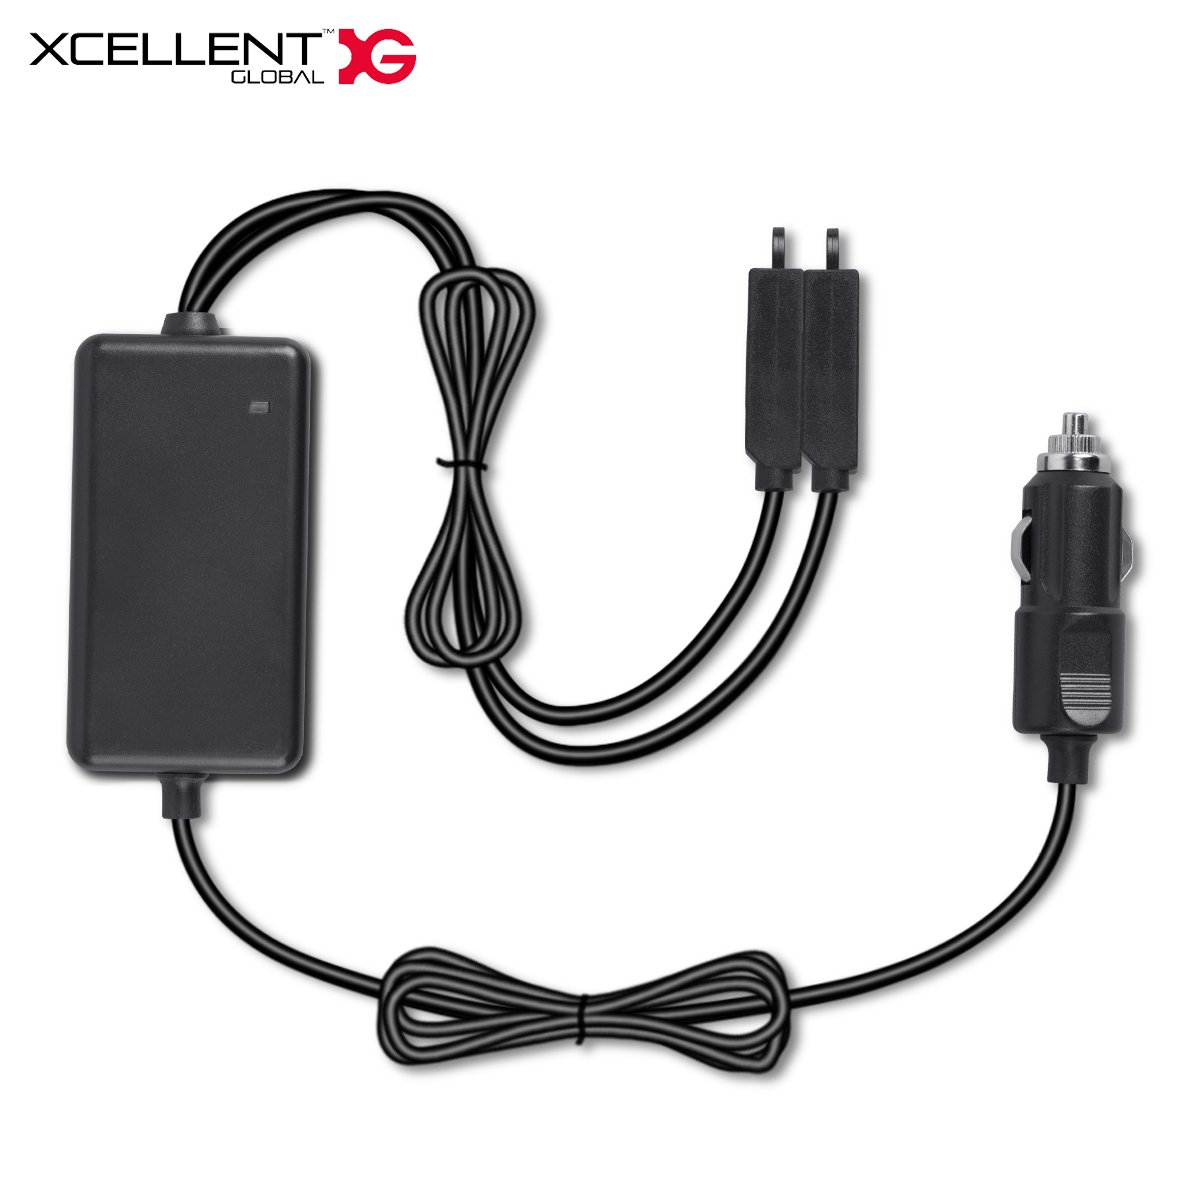 Xcellent Global 5 in 1 Rapid Battery Charger Multi Battery Charger Hub (Charge 3 Batteries Once, 2 USB Ports) for DJI Mavic Pro DR008S …